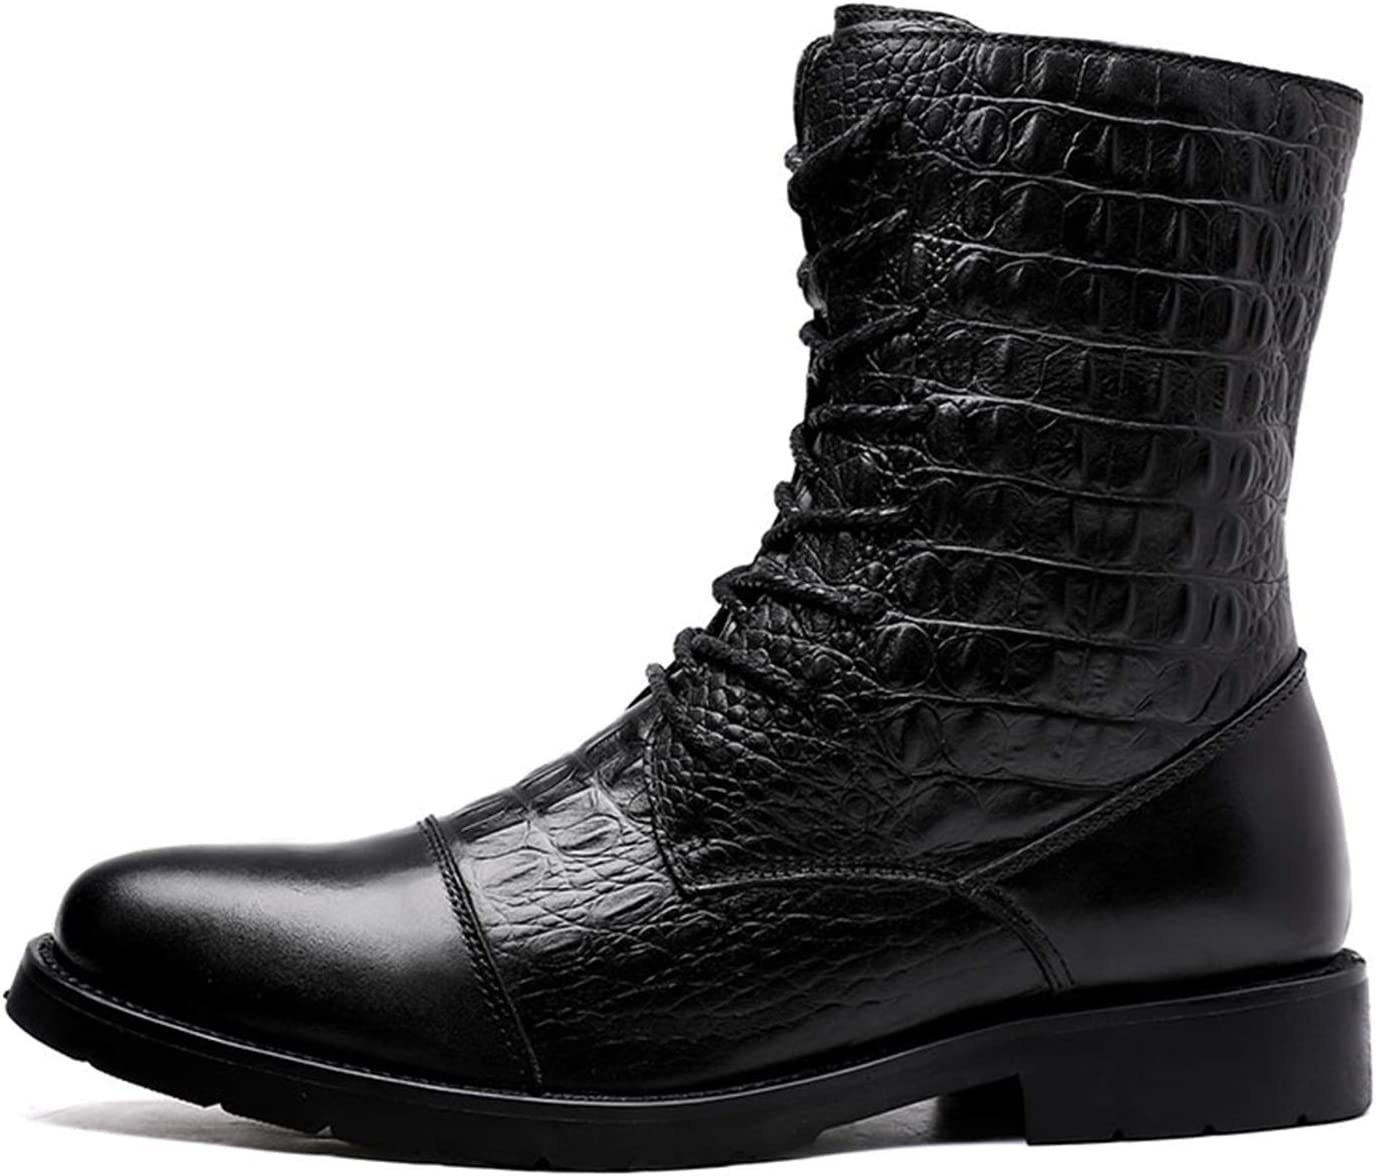 Waterproof leisure Fashionable riding boots Motocycle Department store Combat Men for R Boots